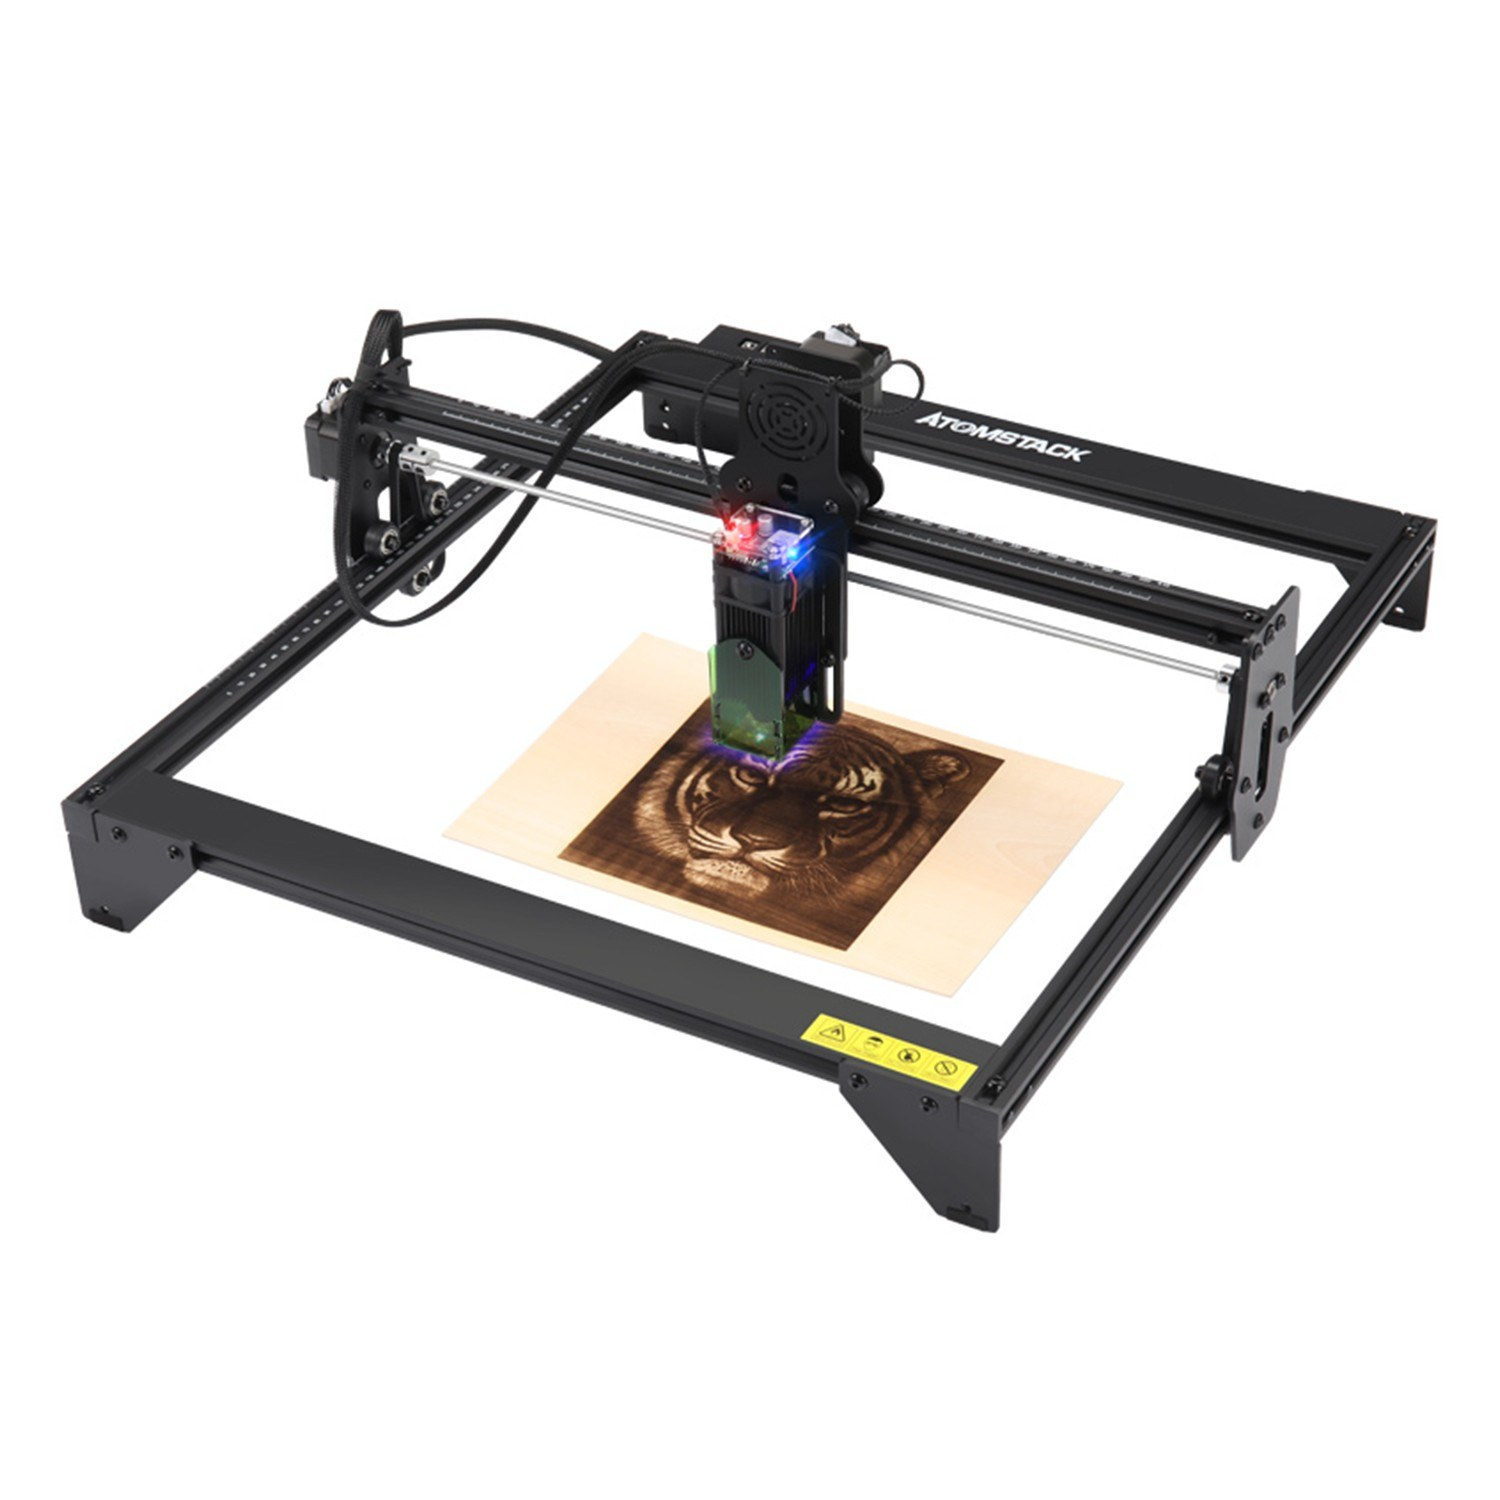 tomtop.com - 53% OFF ATOMSTACK A5 20W Laser Engraver, Limited Offers $229.99